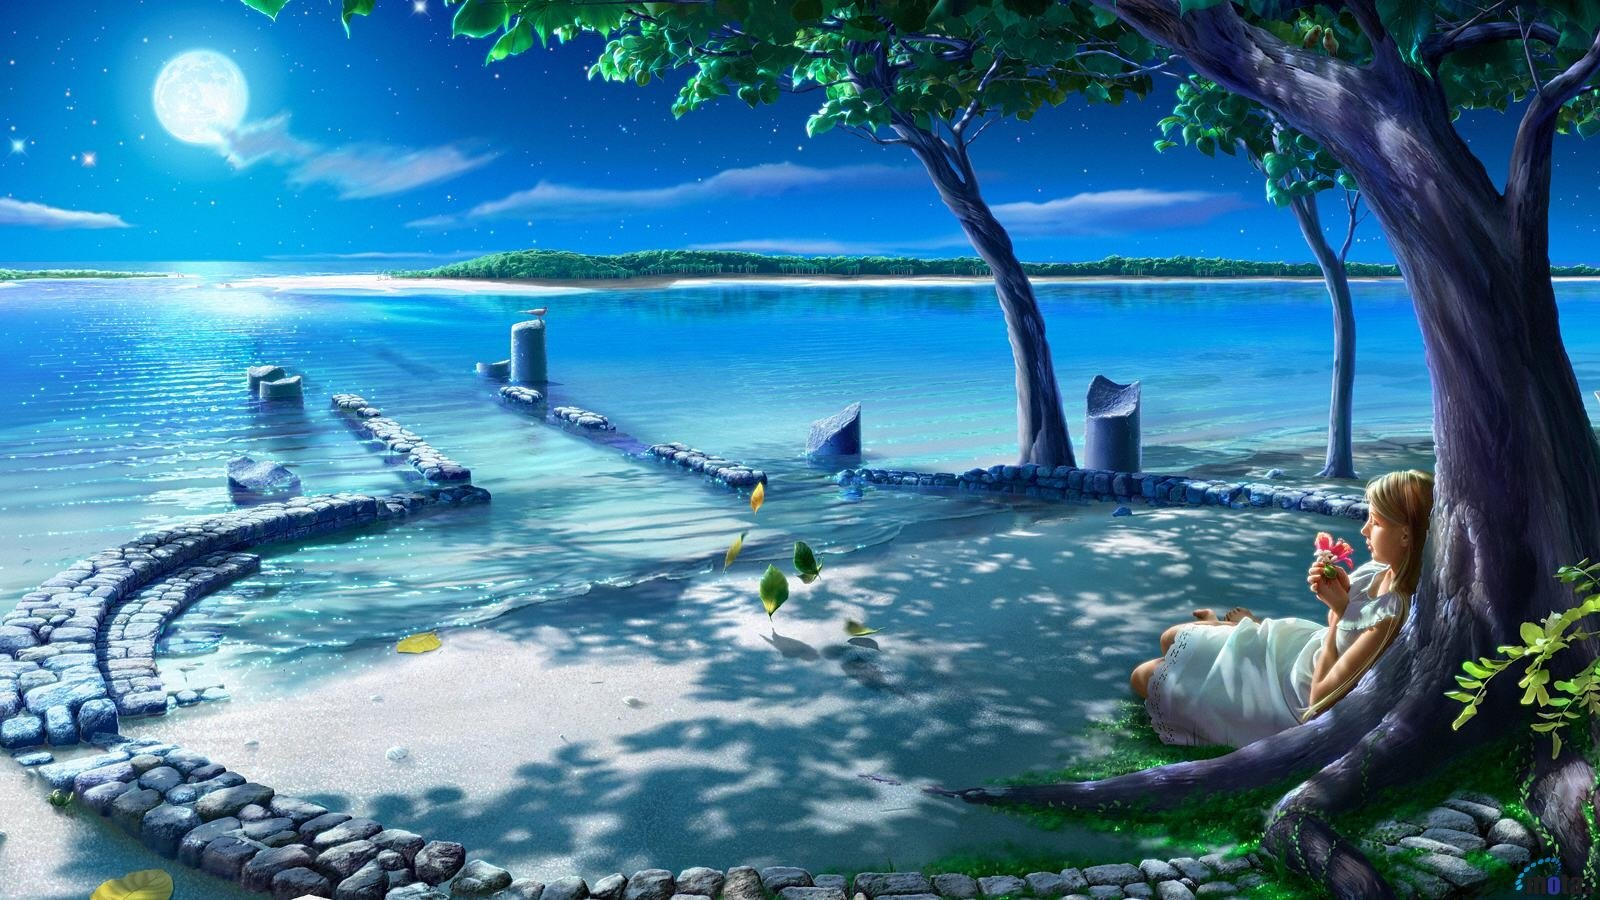 Wallpapers ID:149974